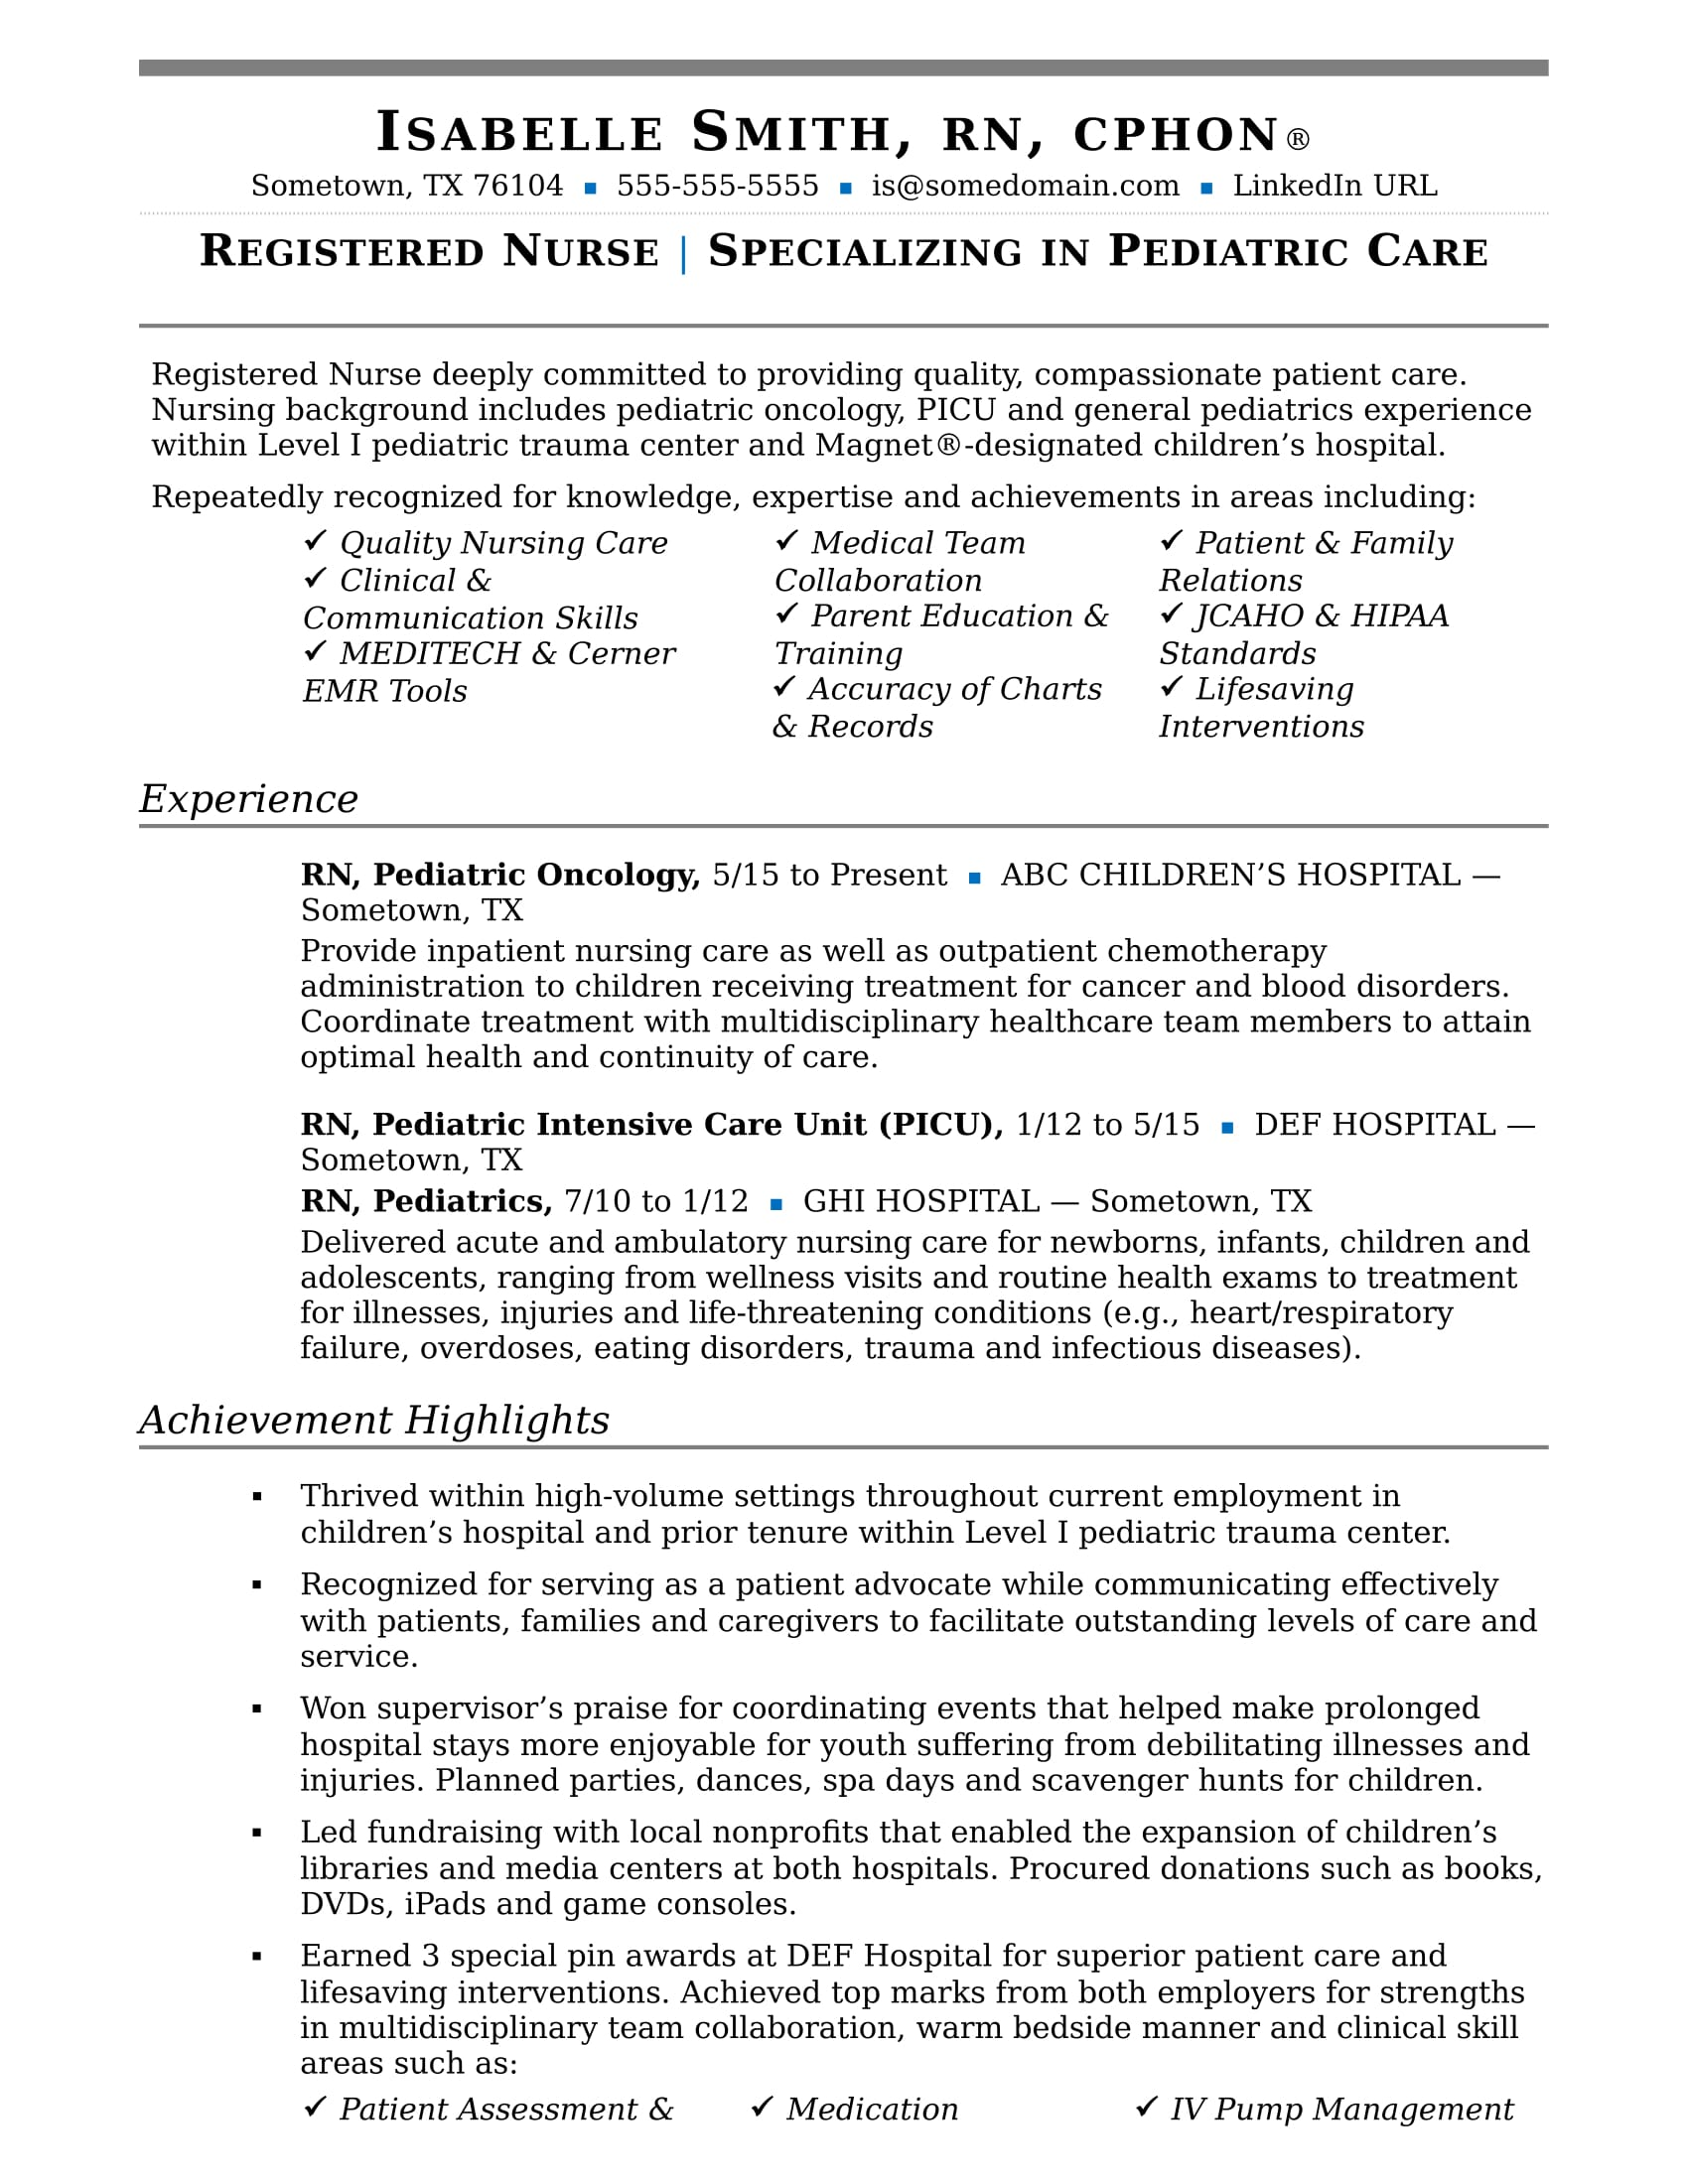 nurse resume sample monster new registered template canva aid example of latest office Resume New Registered Nurse Resume Template